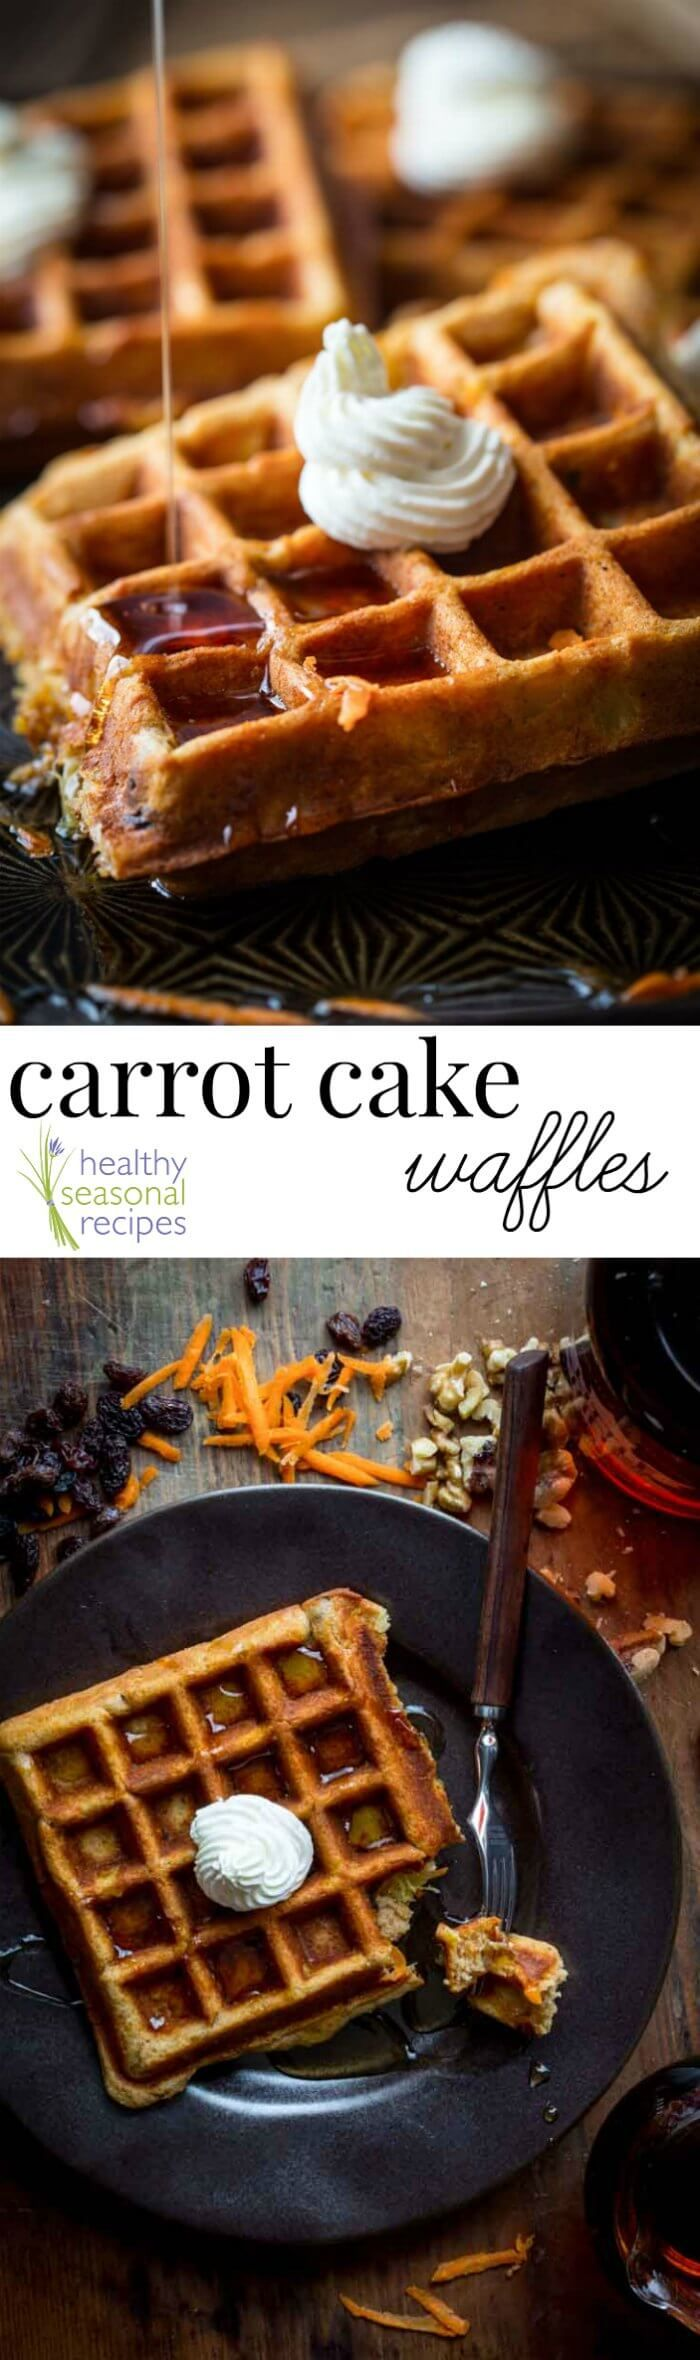 These Carrot Cake Waffles are a cross between a hearty, wholesome whole-wheat waffle and a slice of carrot cake. They have 9 grams of protein, 5 grams of fiber and nearly 25% of the RDA for Vitamin A and C. @healthyseasonal | Healthy Seasonal Recipes